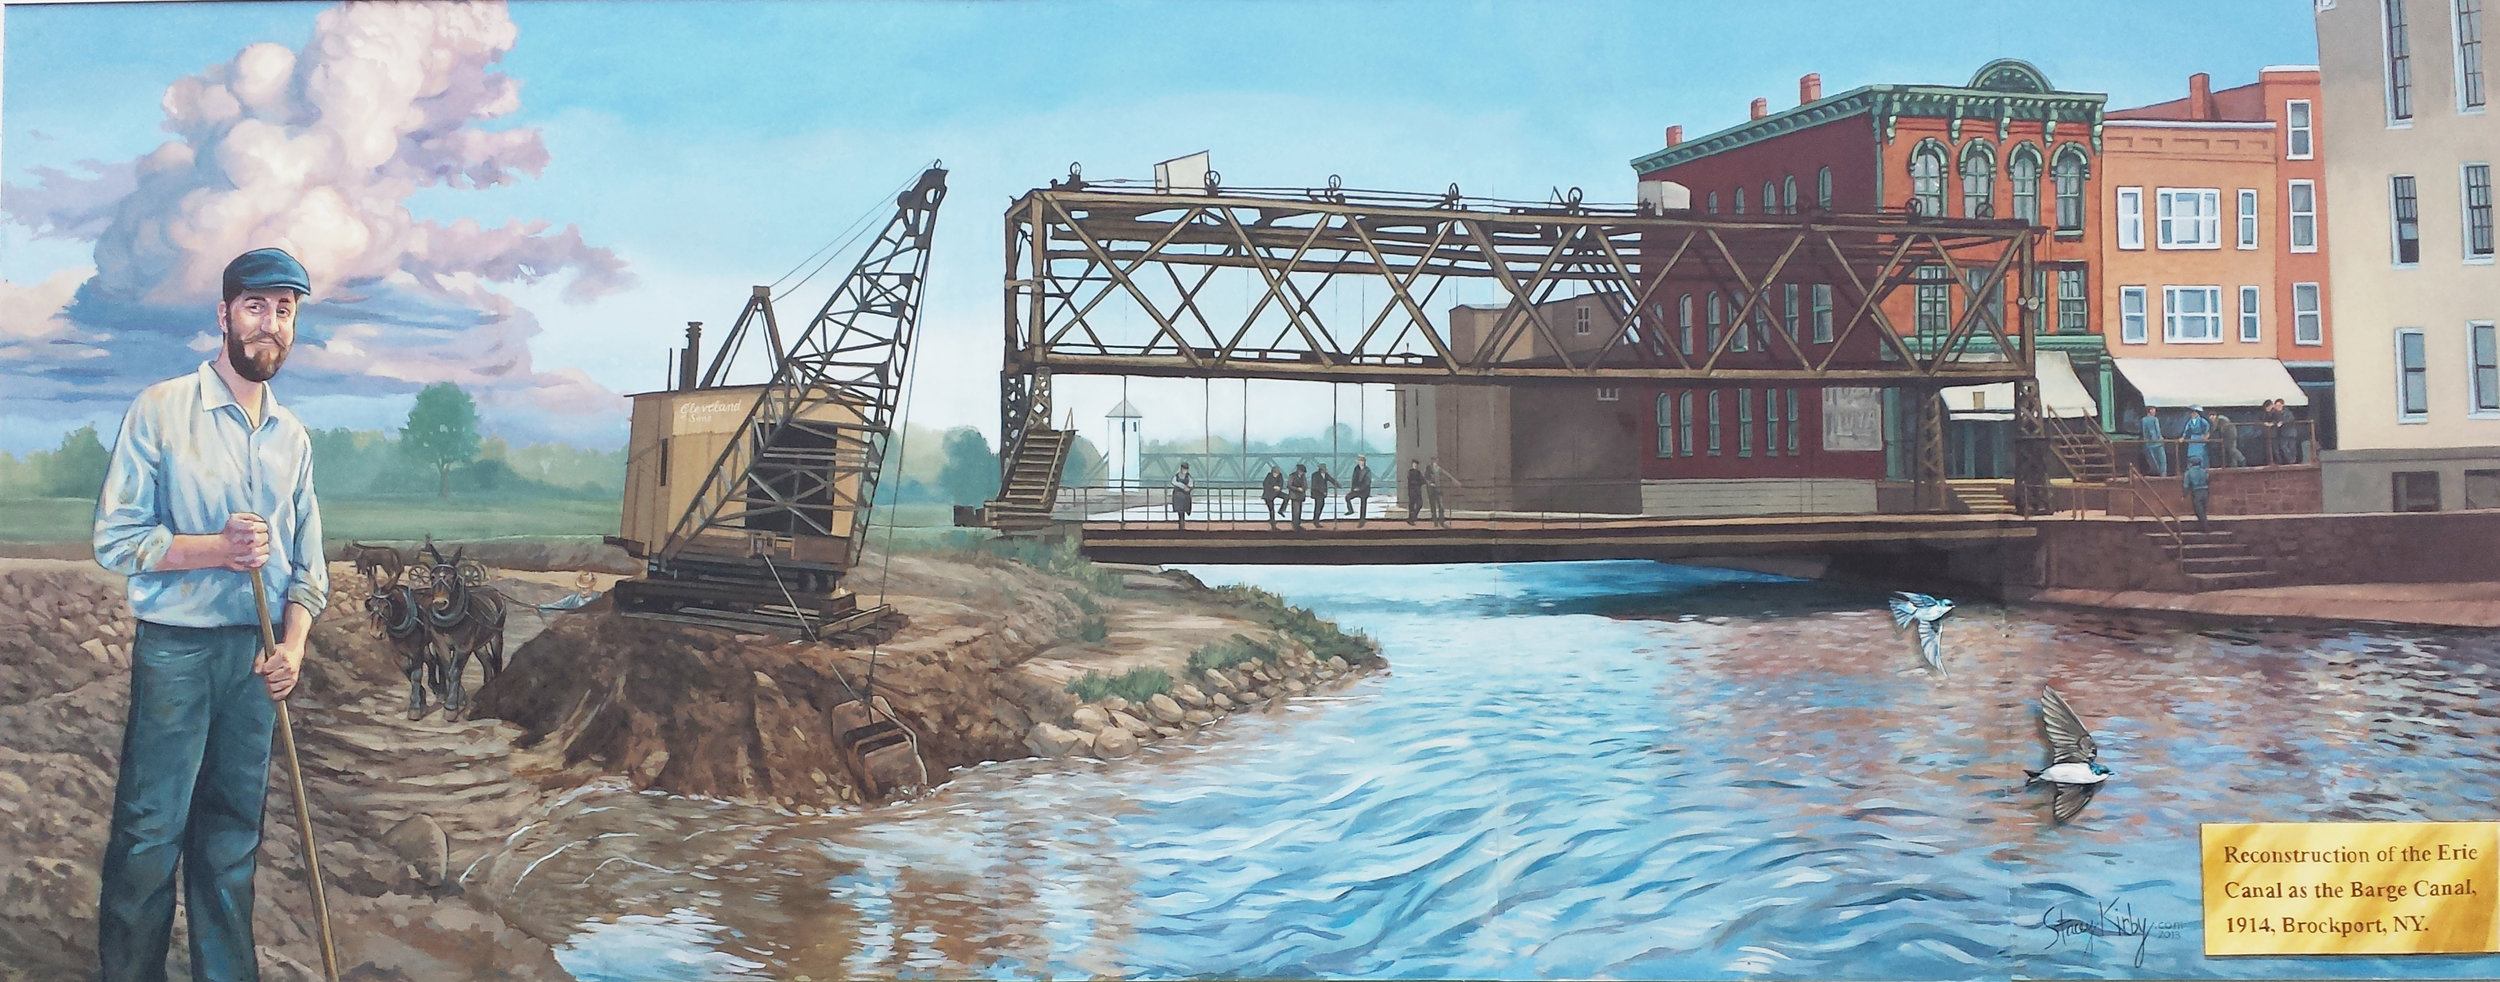 Expansion of the Erie Canal